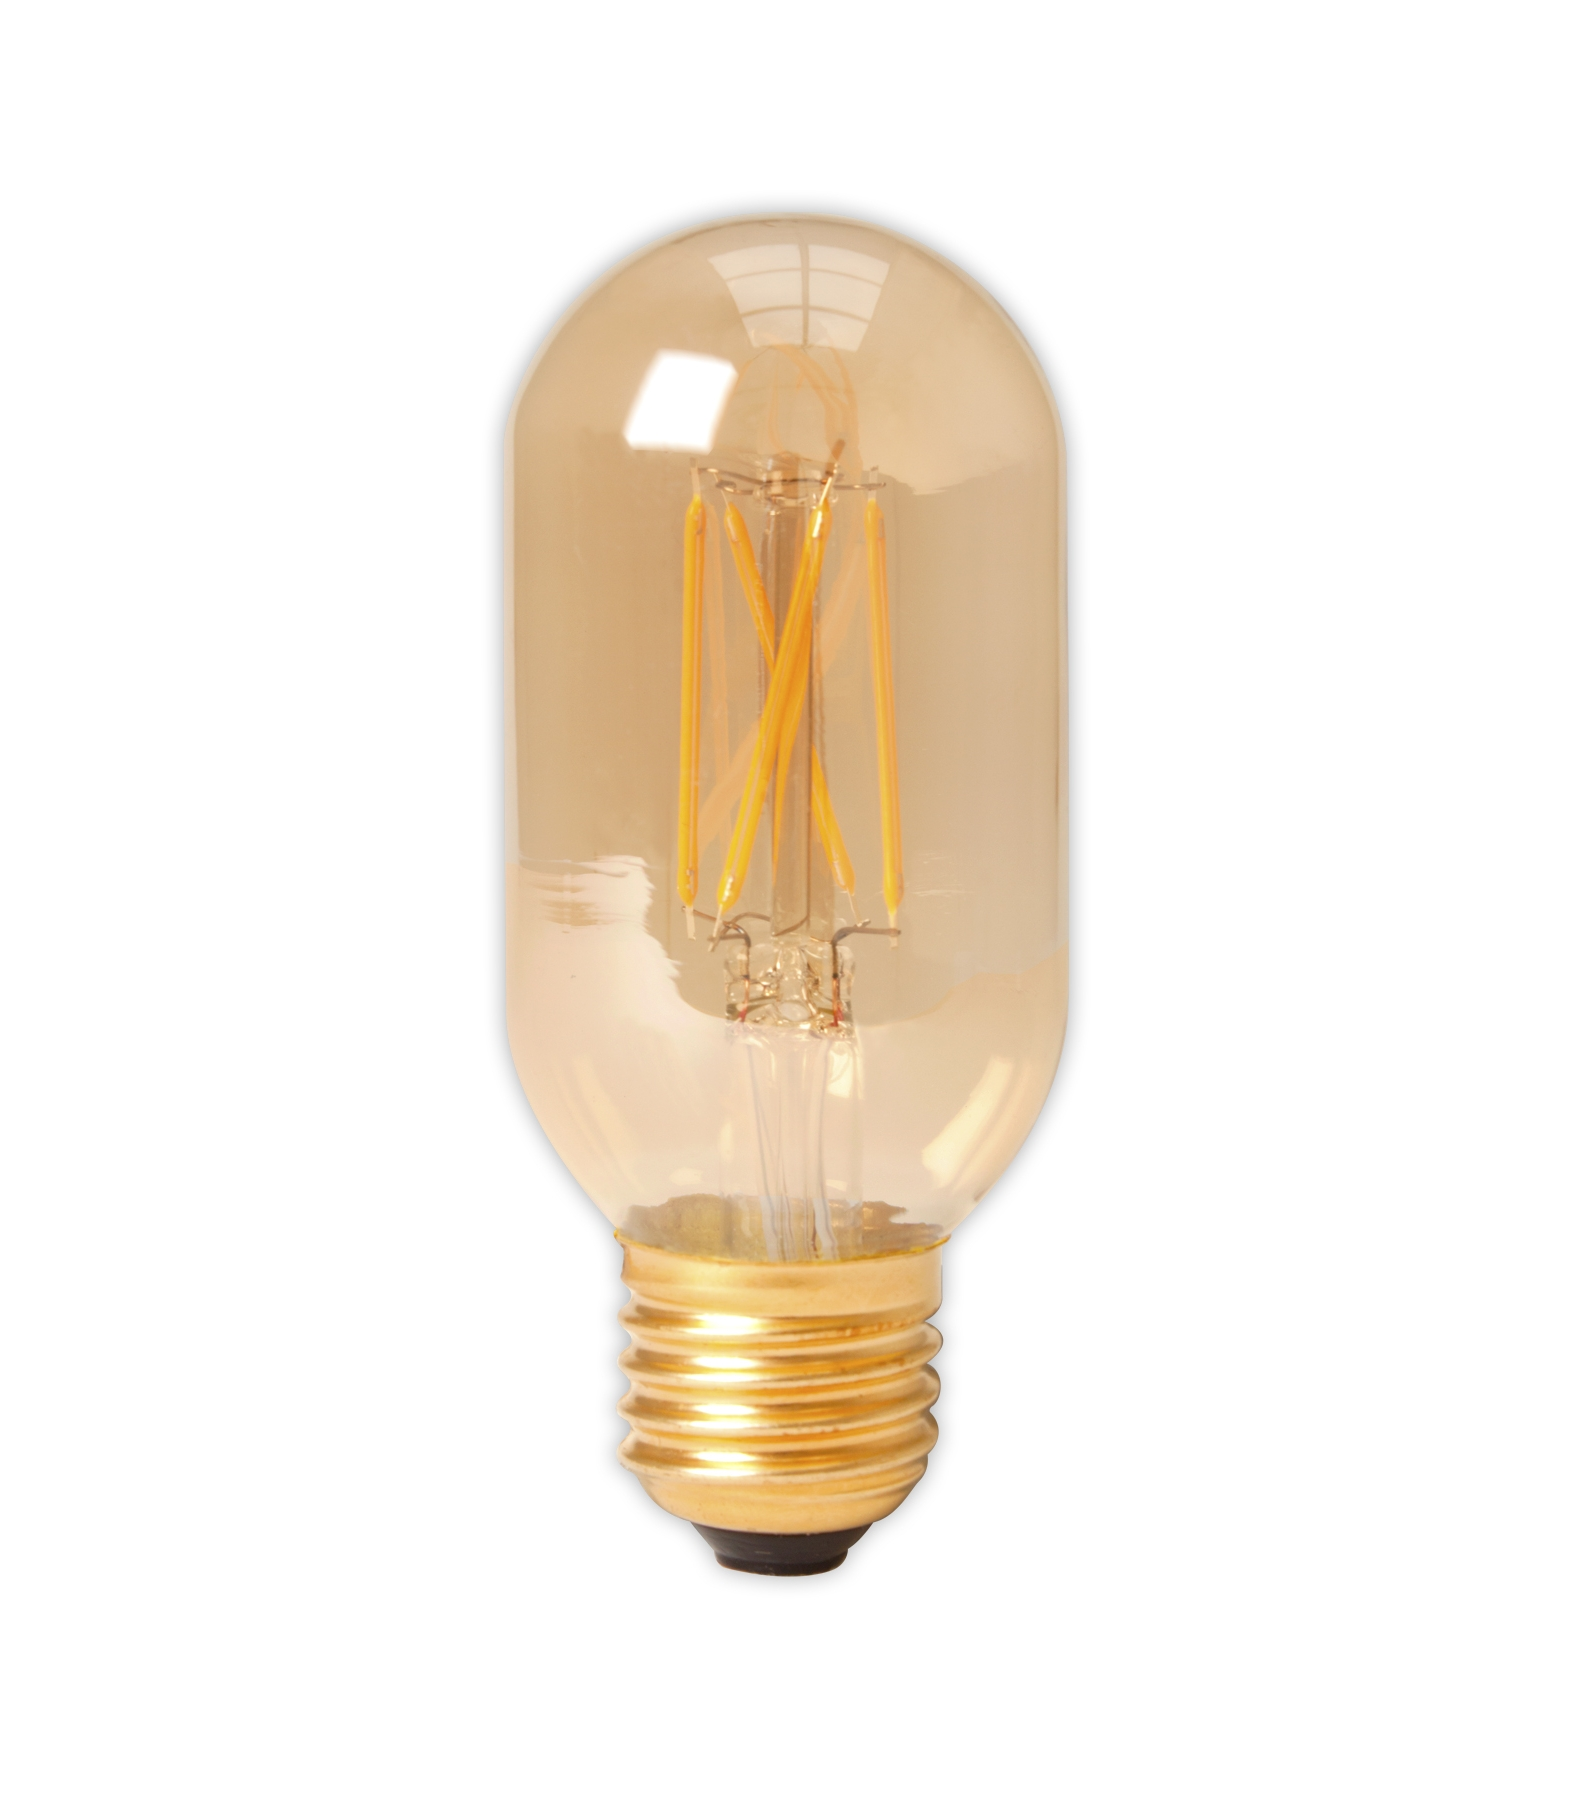 Calex led full glass longfilament globe lamp 240v 4w 320lm e27 calex led full glass filament tubular type lamp 240v 4w 320lm e27 t45x110 gold parisarafo Gallery